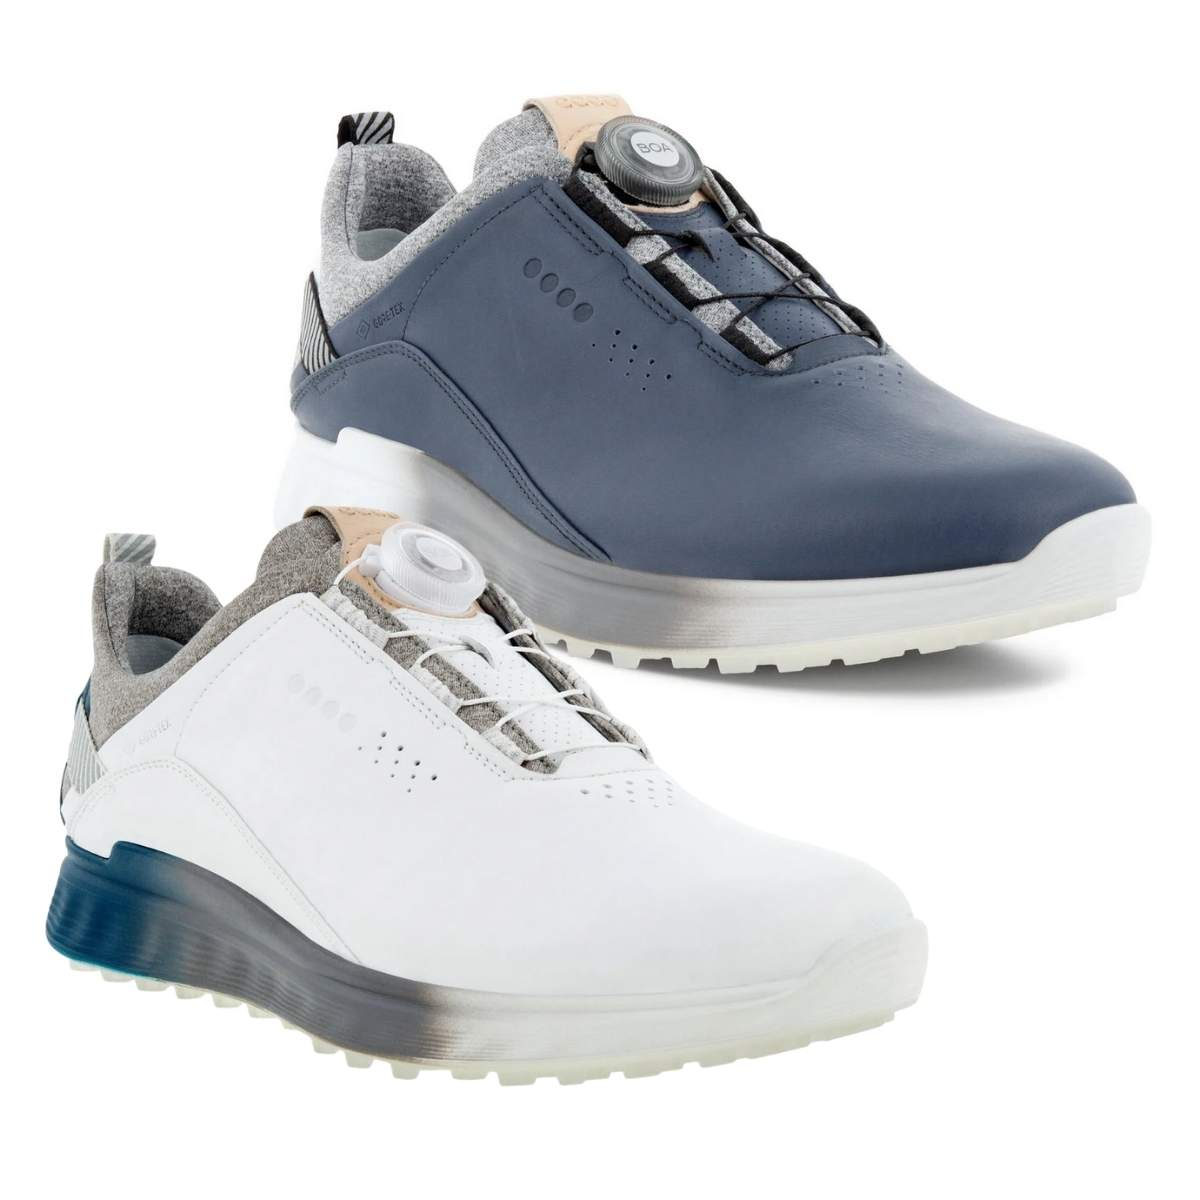 ECCO Men's S-Three BOA Golf Shoe